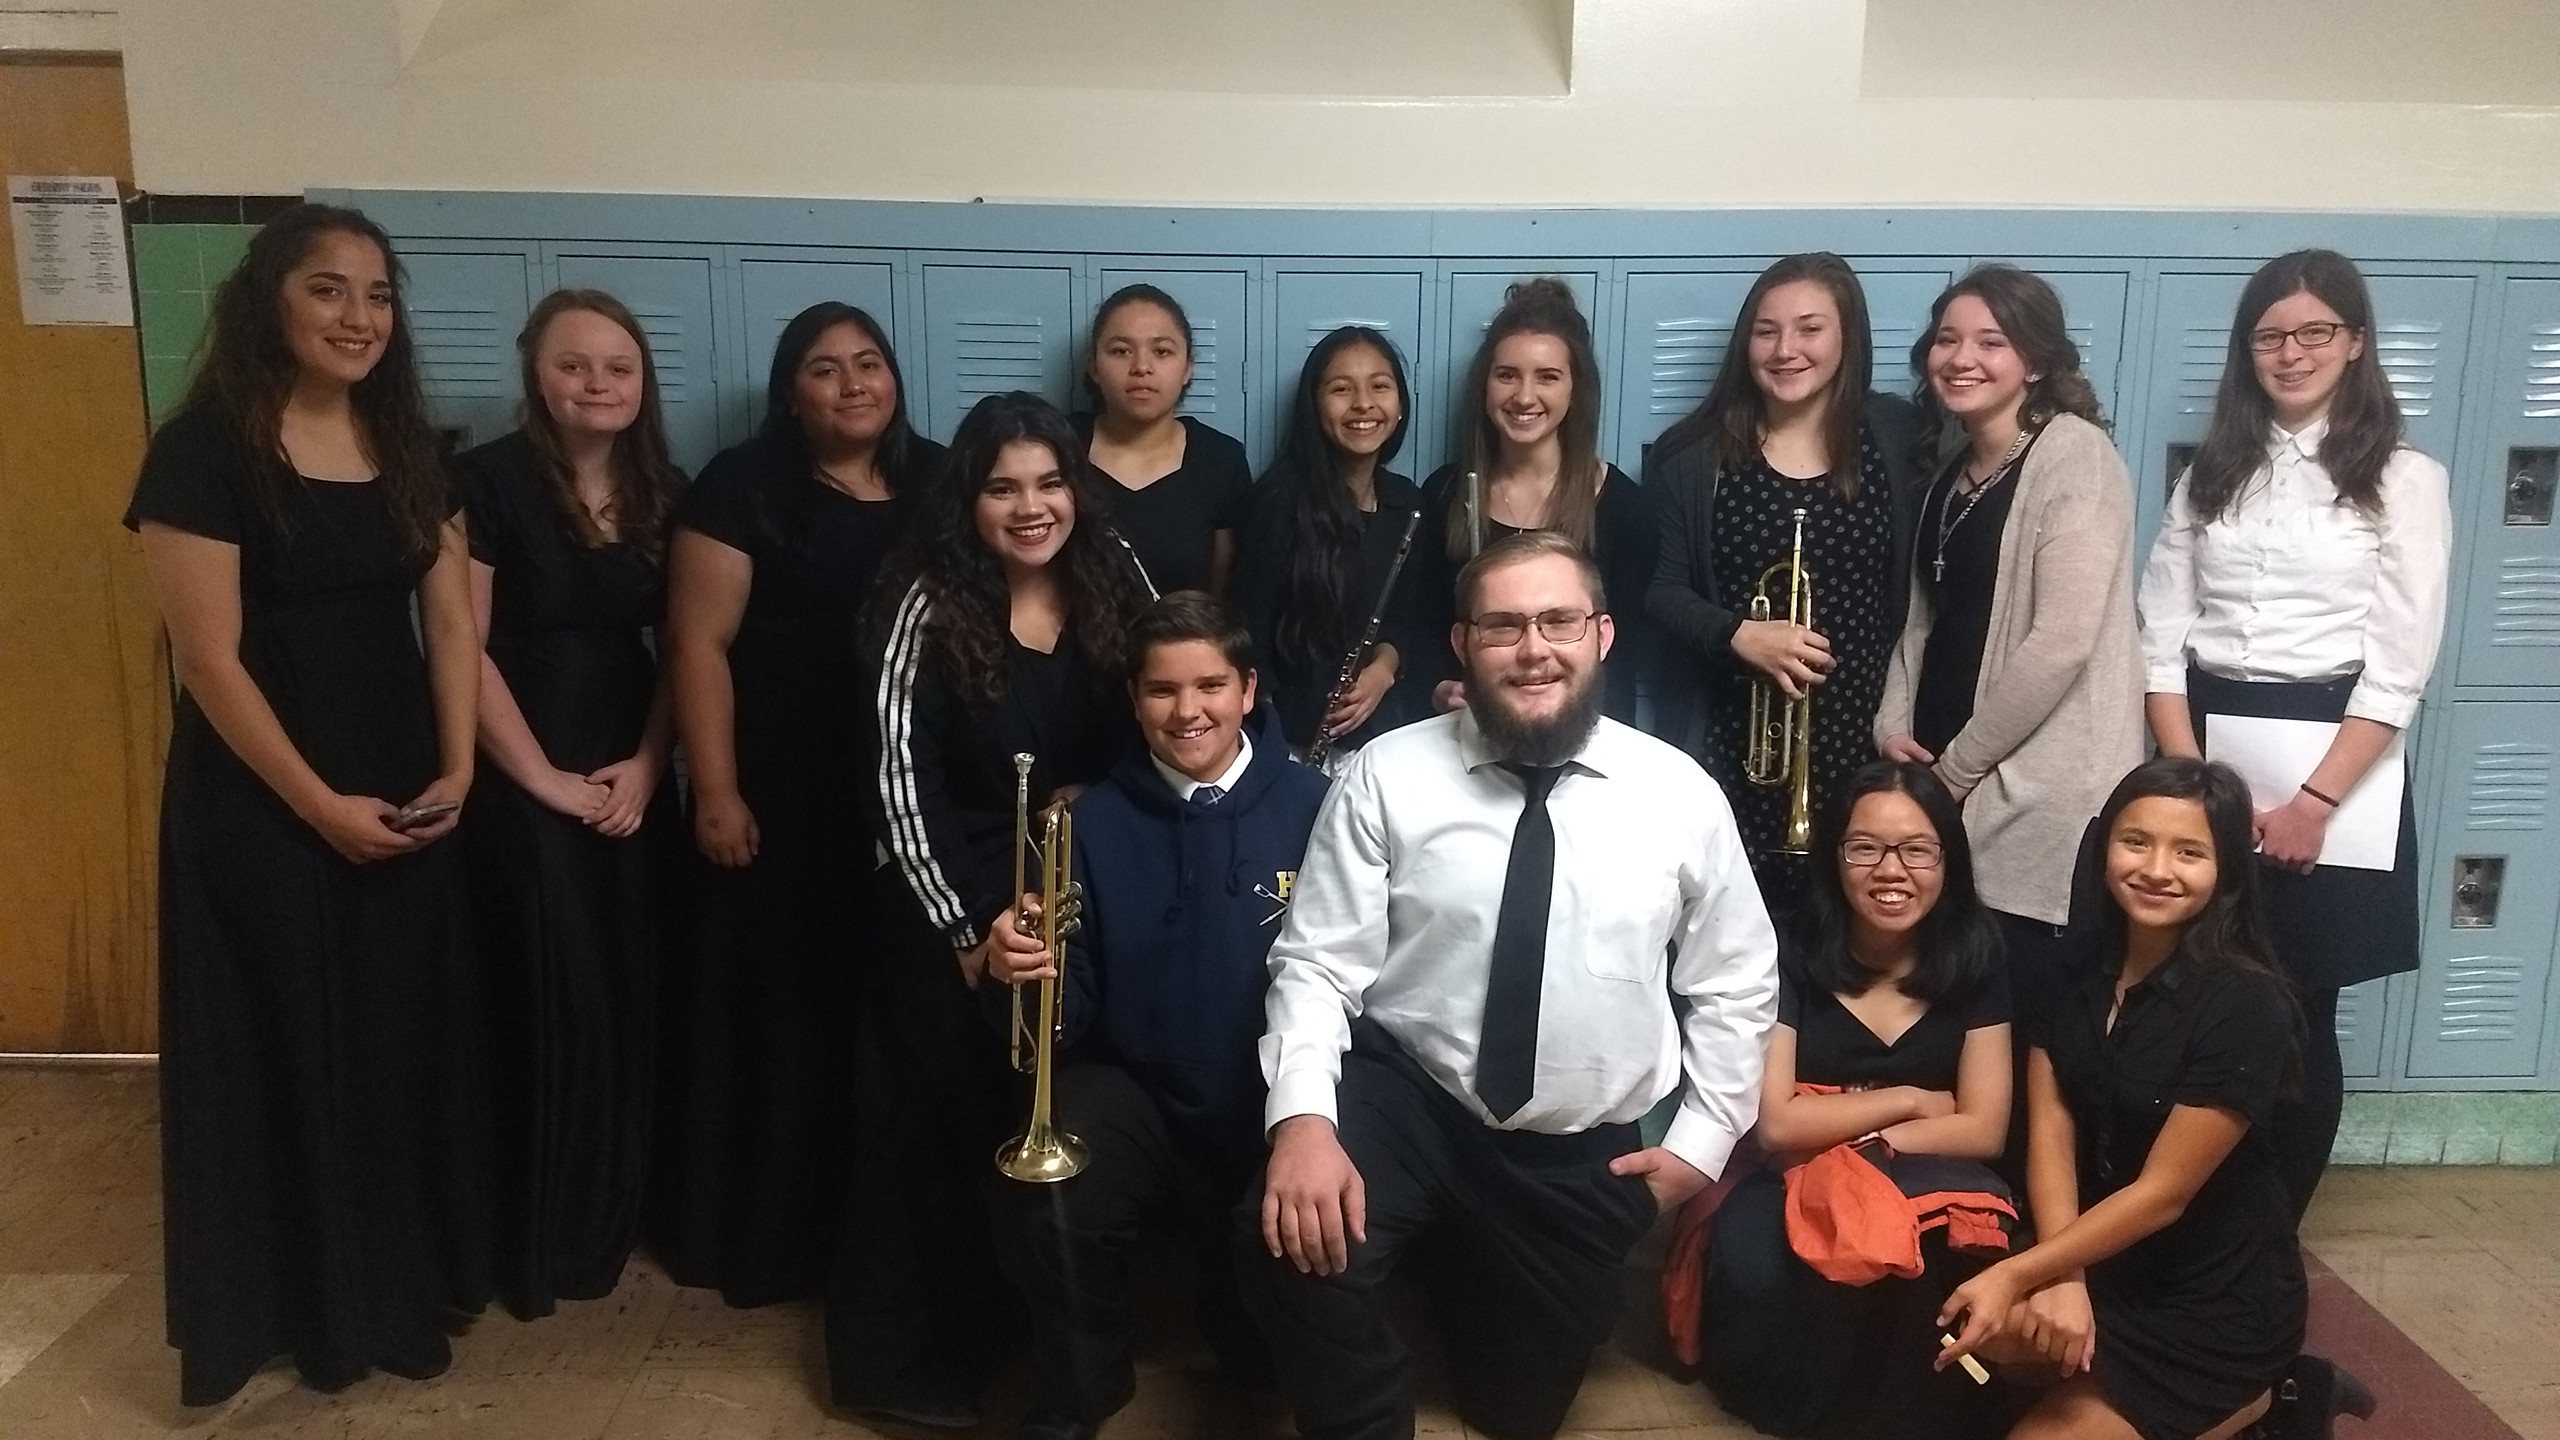 We had a great group of musically talented students who attended Honor Clinic this year.